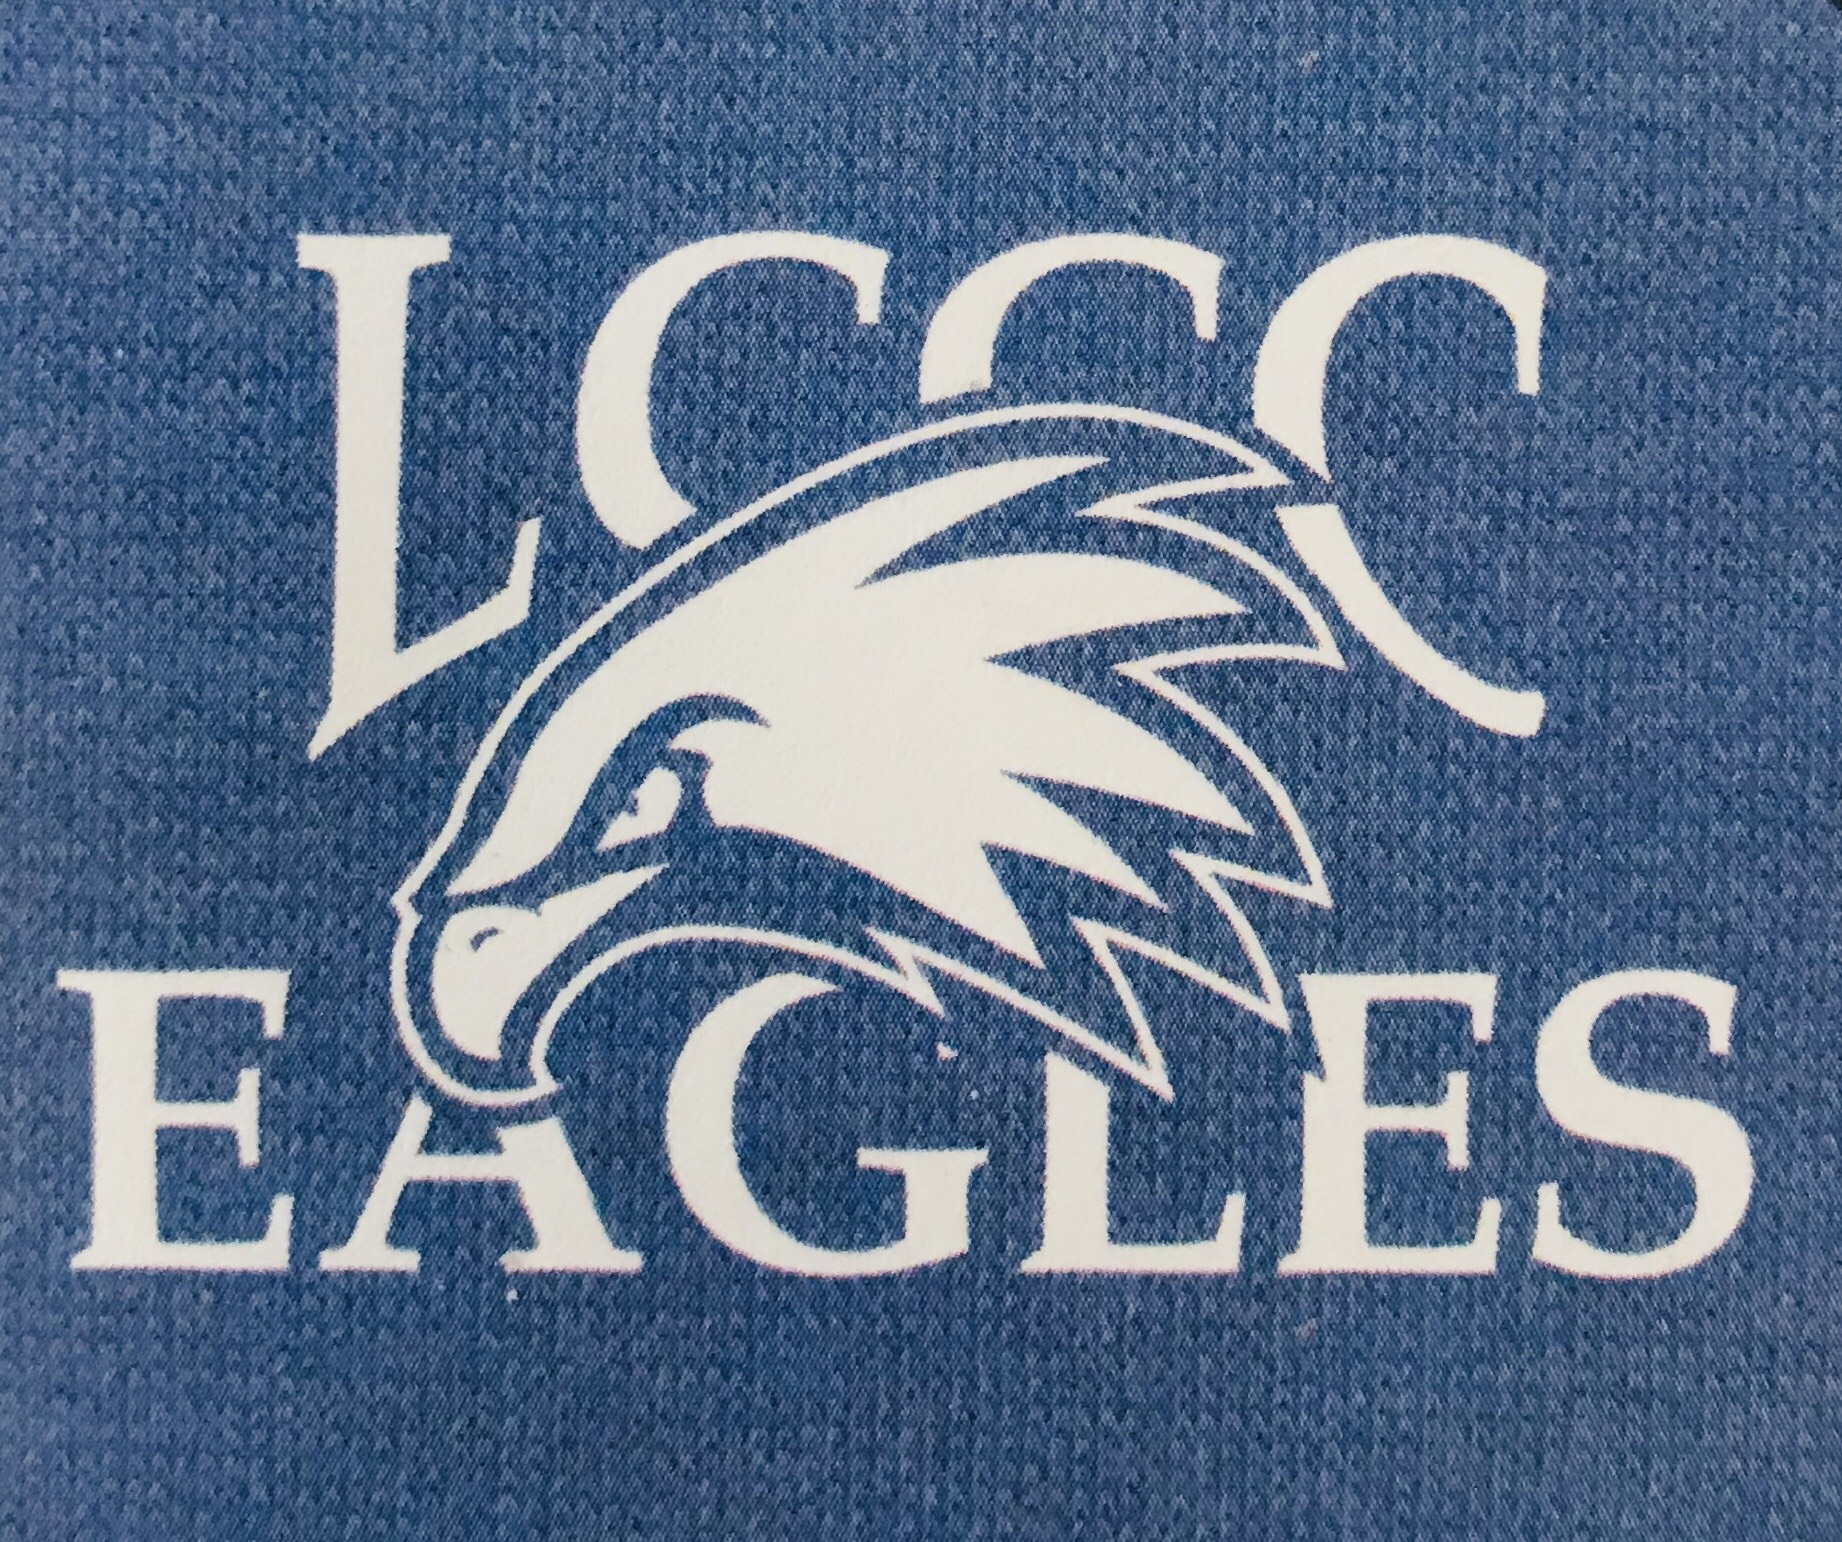 LCCC Eagles Sweatshirt Blanket